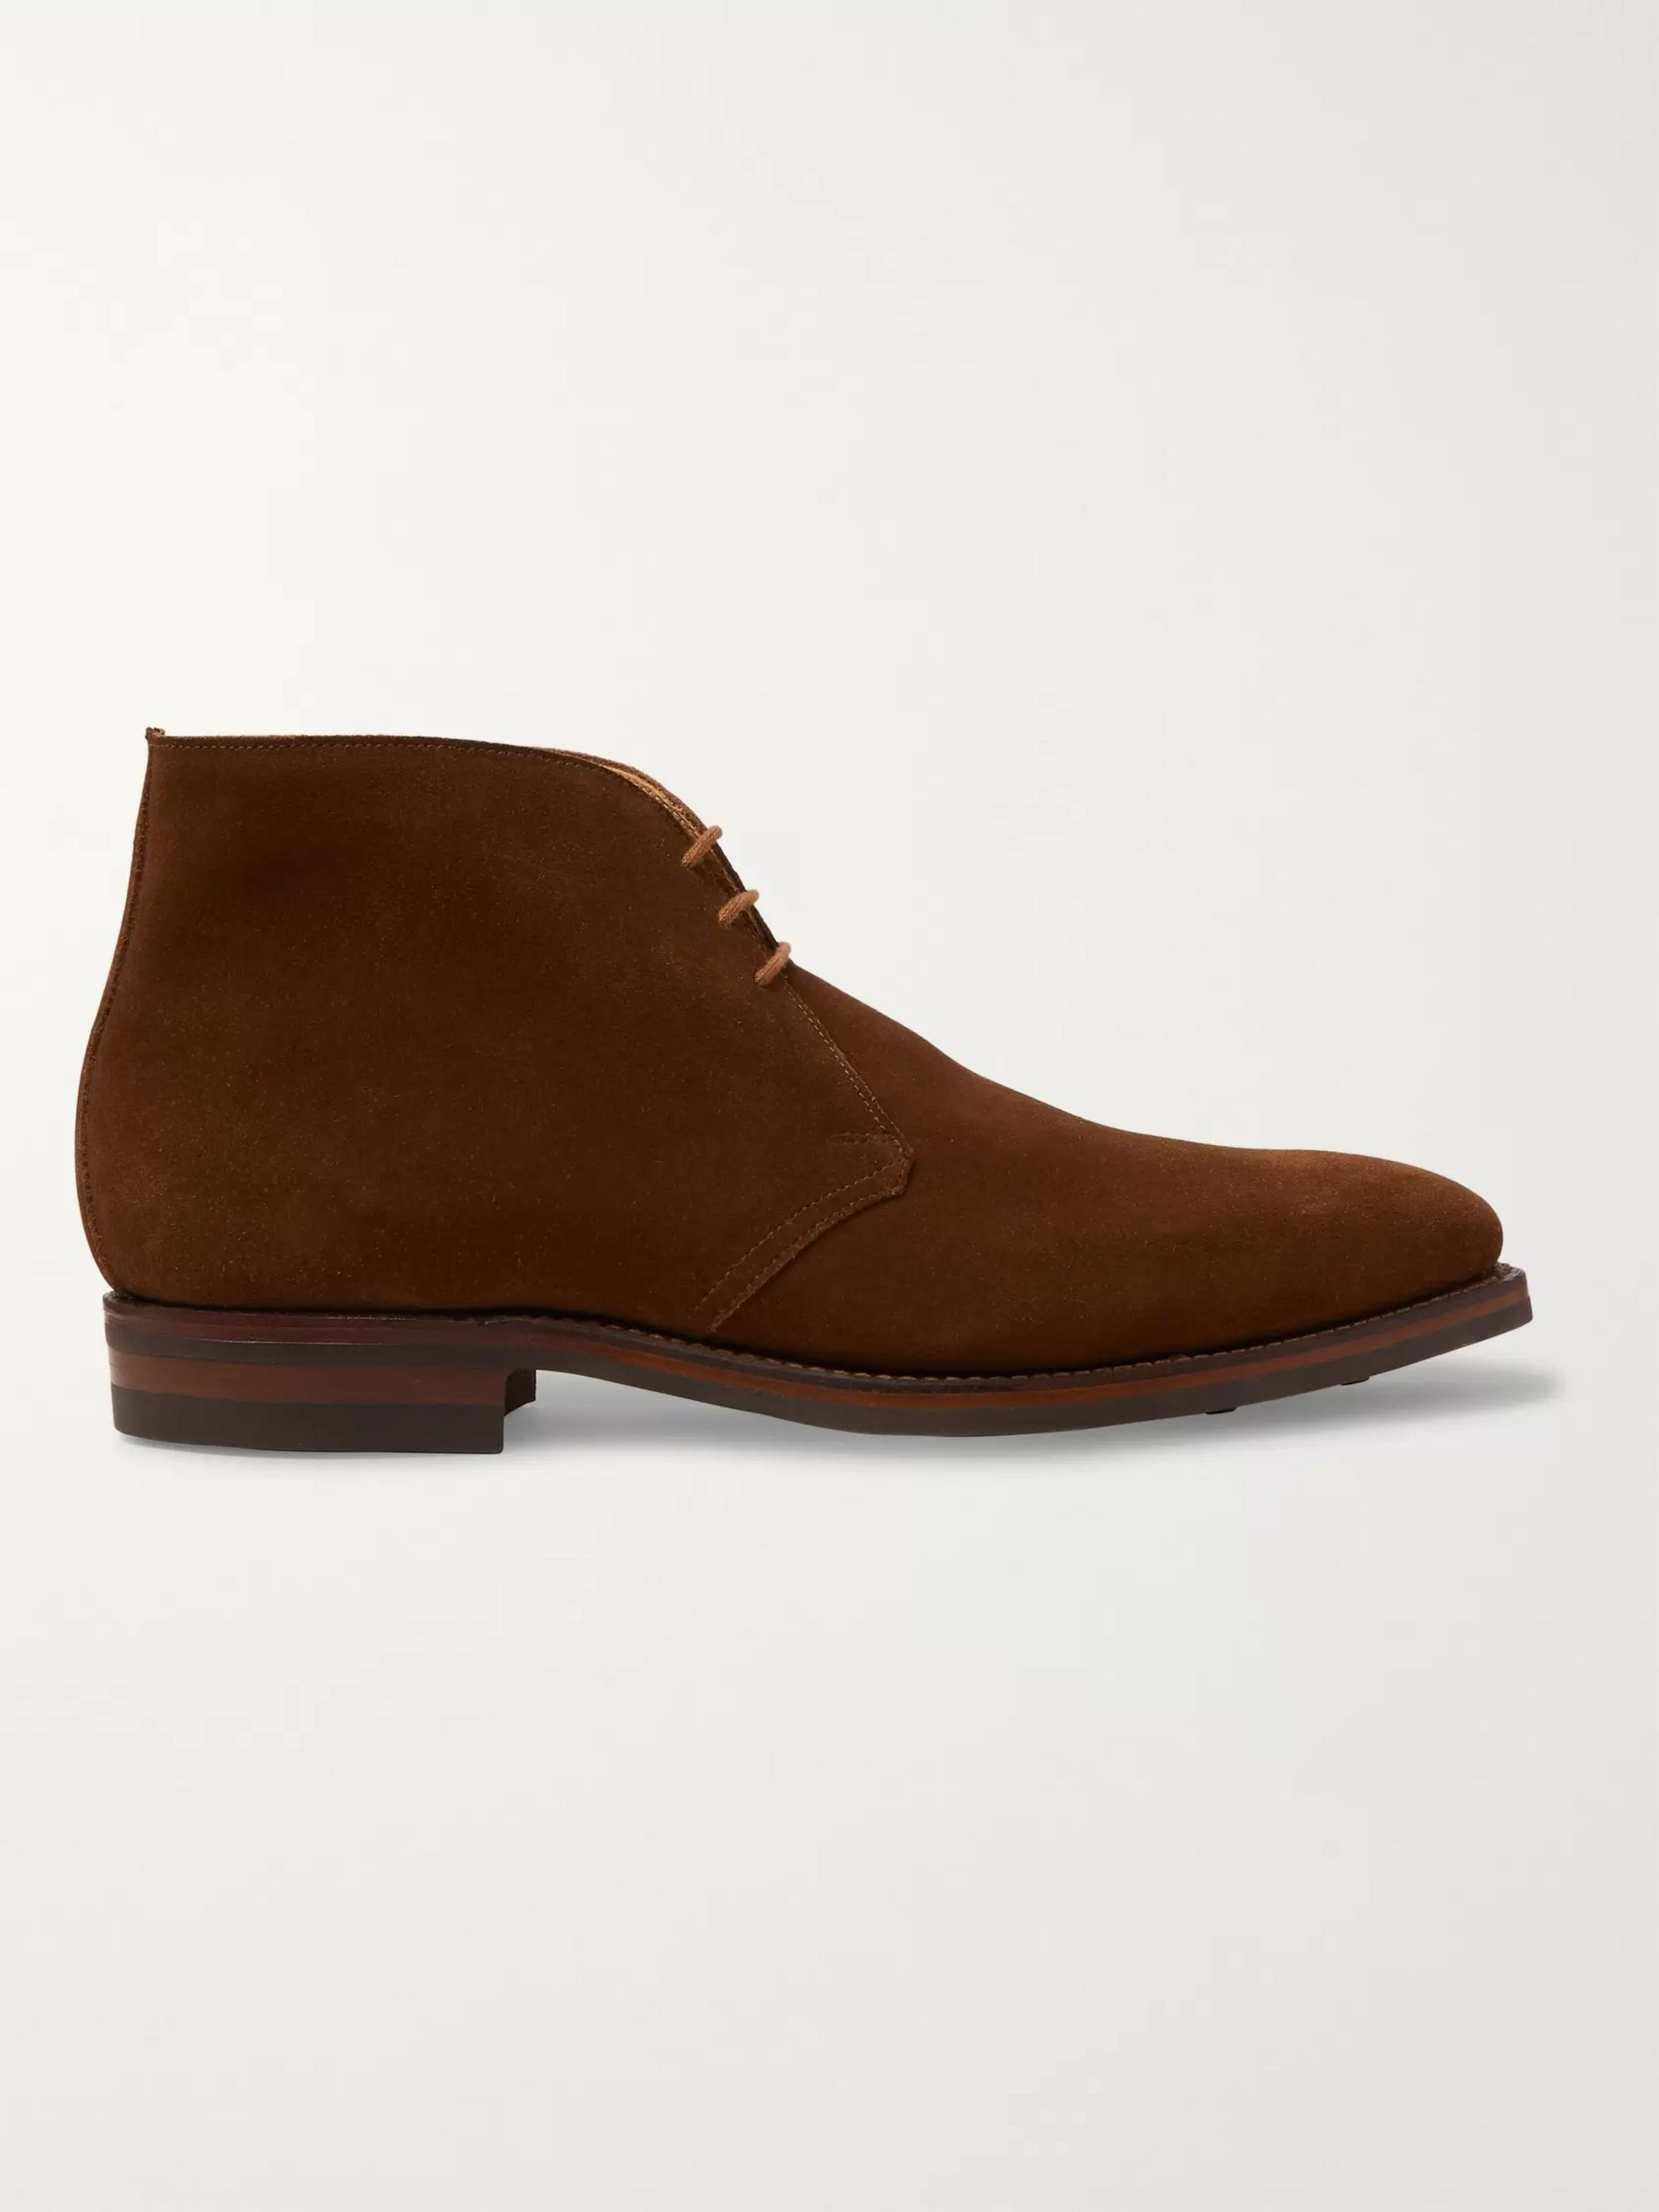 James Purdey & Sons Suede Chukka Boots